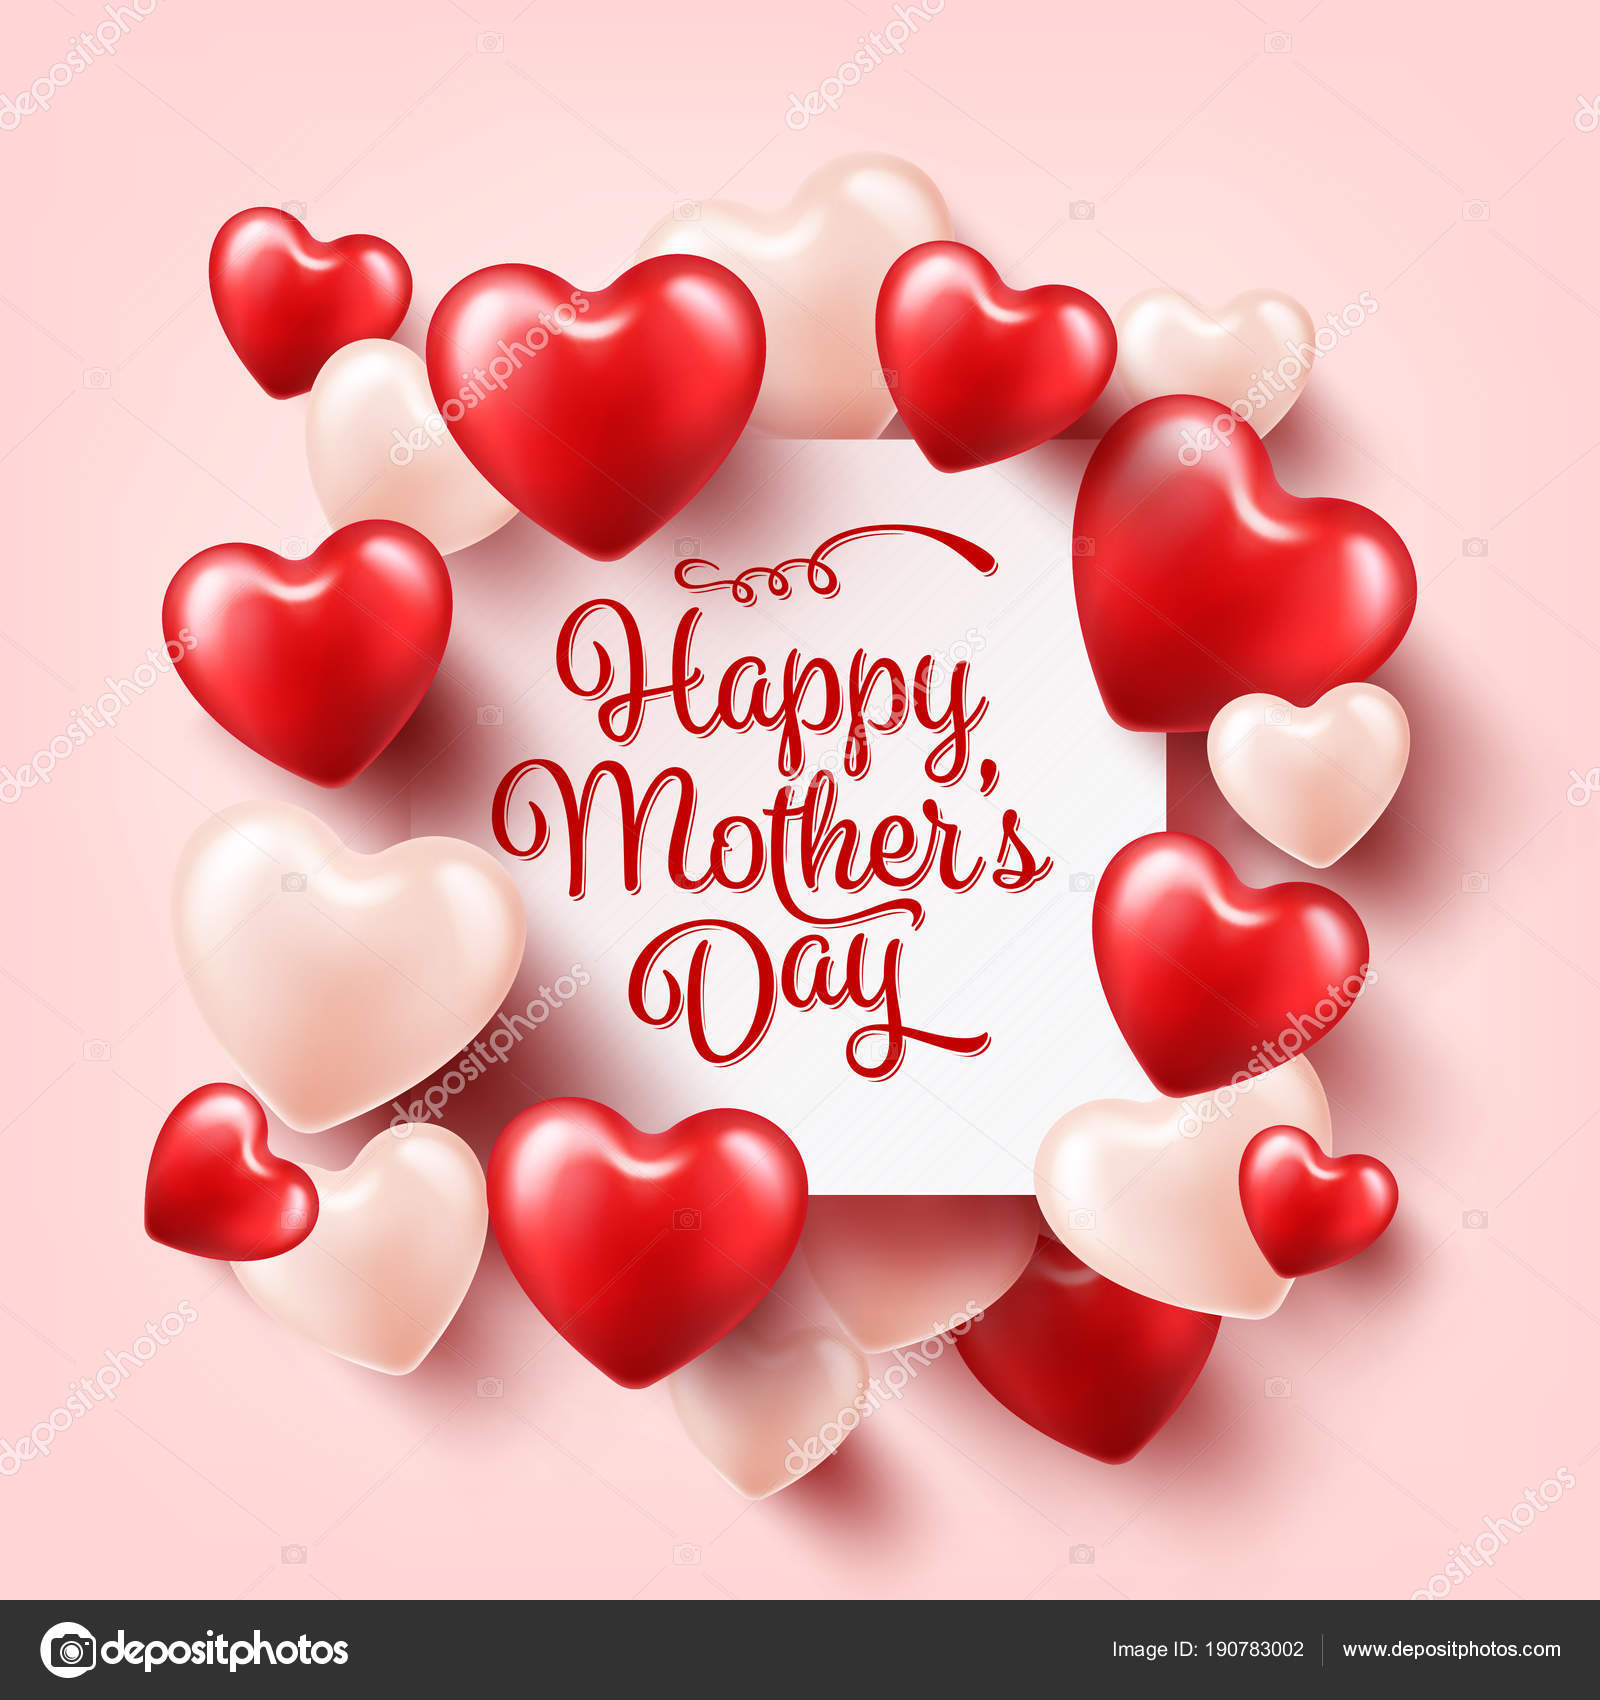 Mothers day background with red hearts greeting card template with mothers day background with red hearts greeting card template with lettering heart shaped m4hsunfo